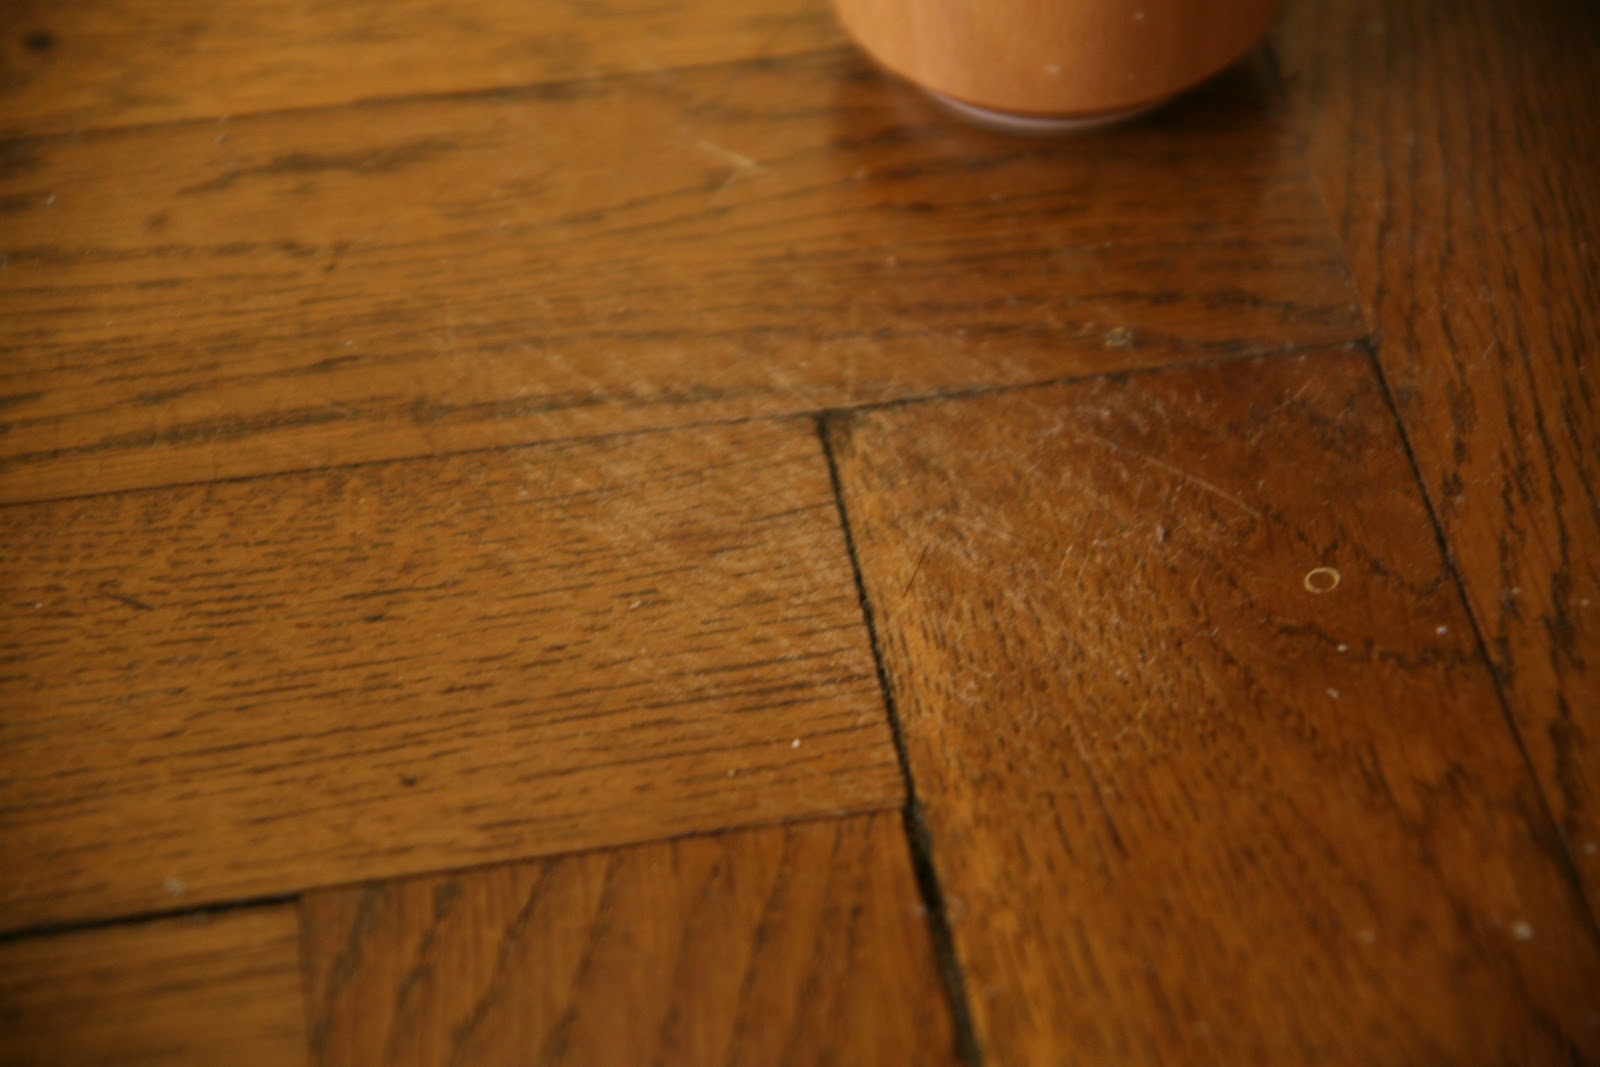 Remove Paint From Hardwood Floor - LoveToKnow: Advice women can trust